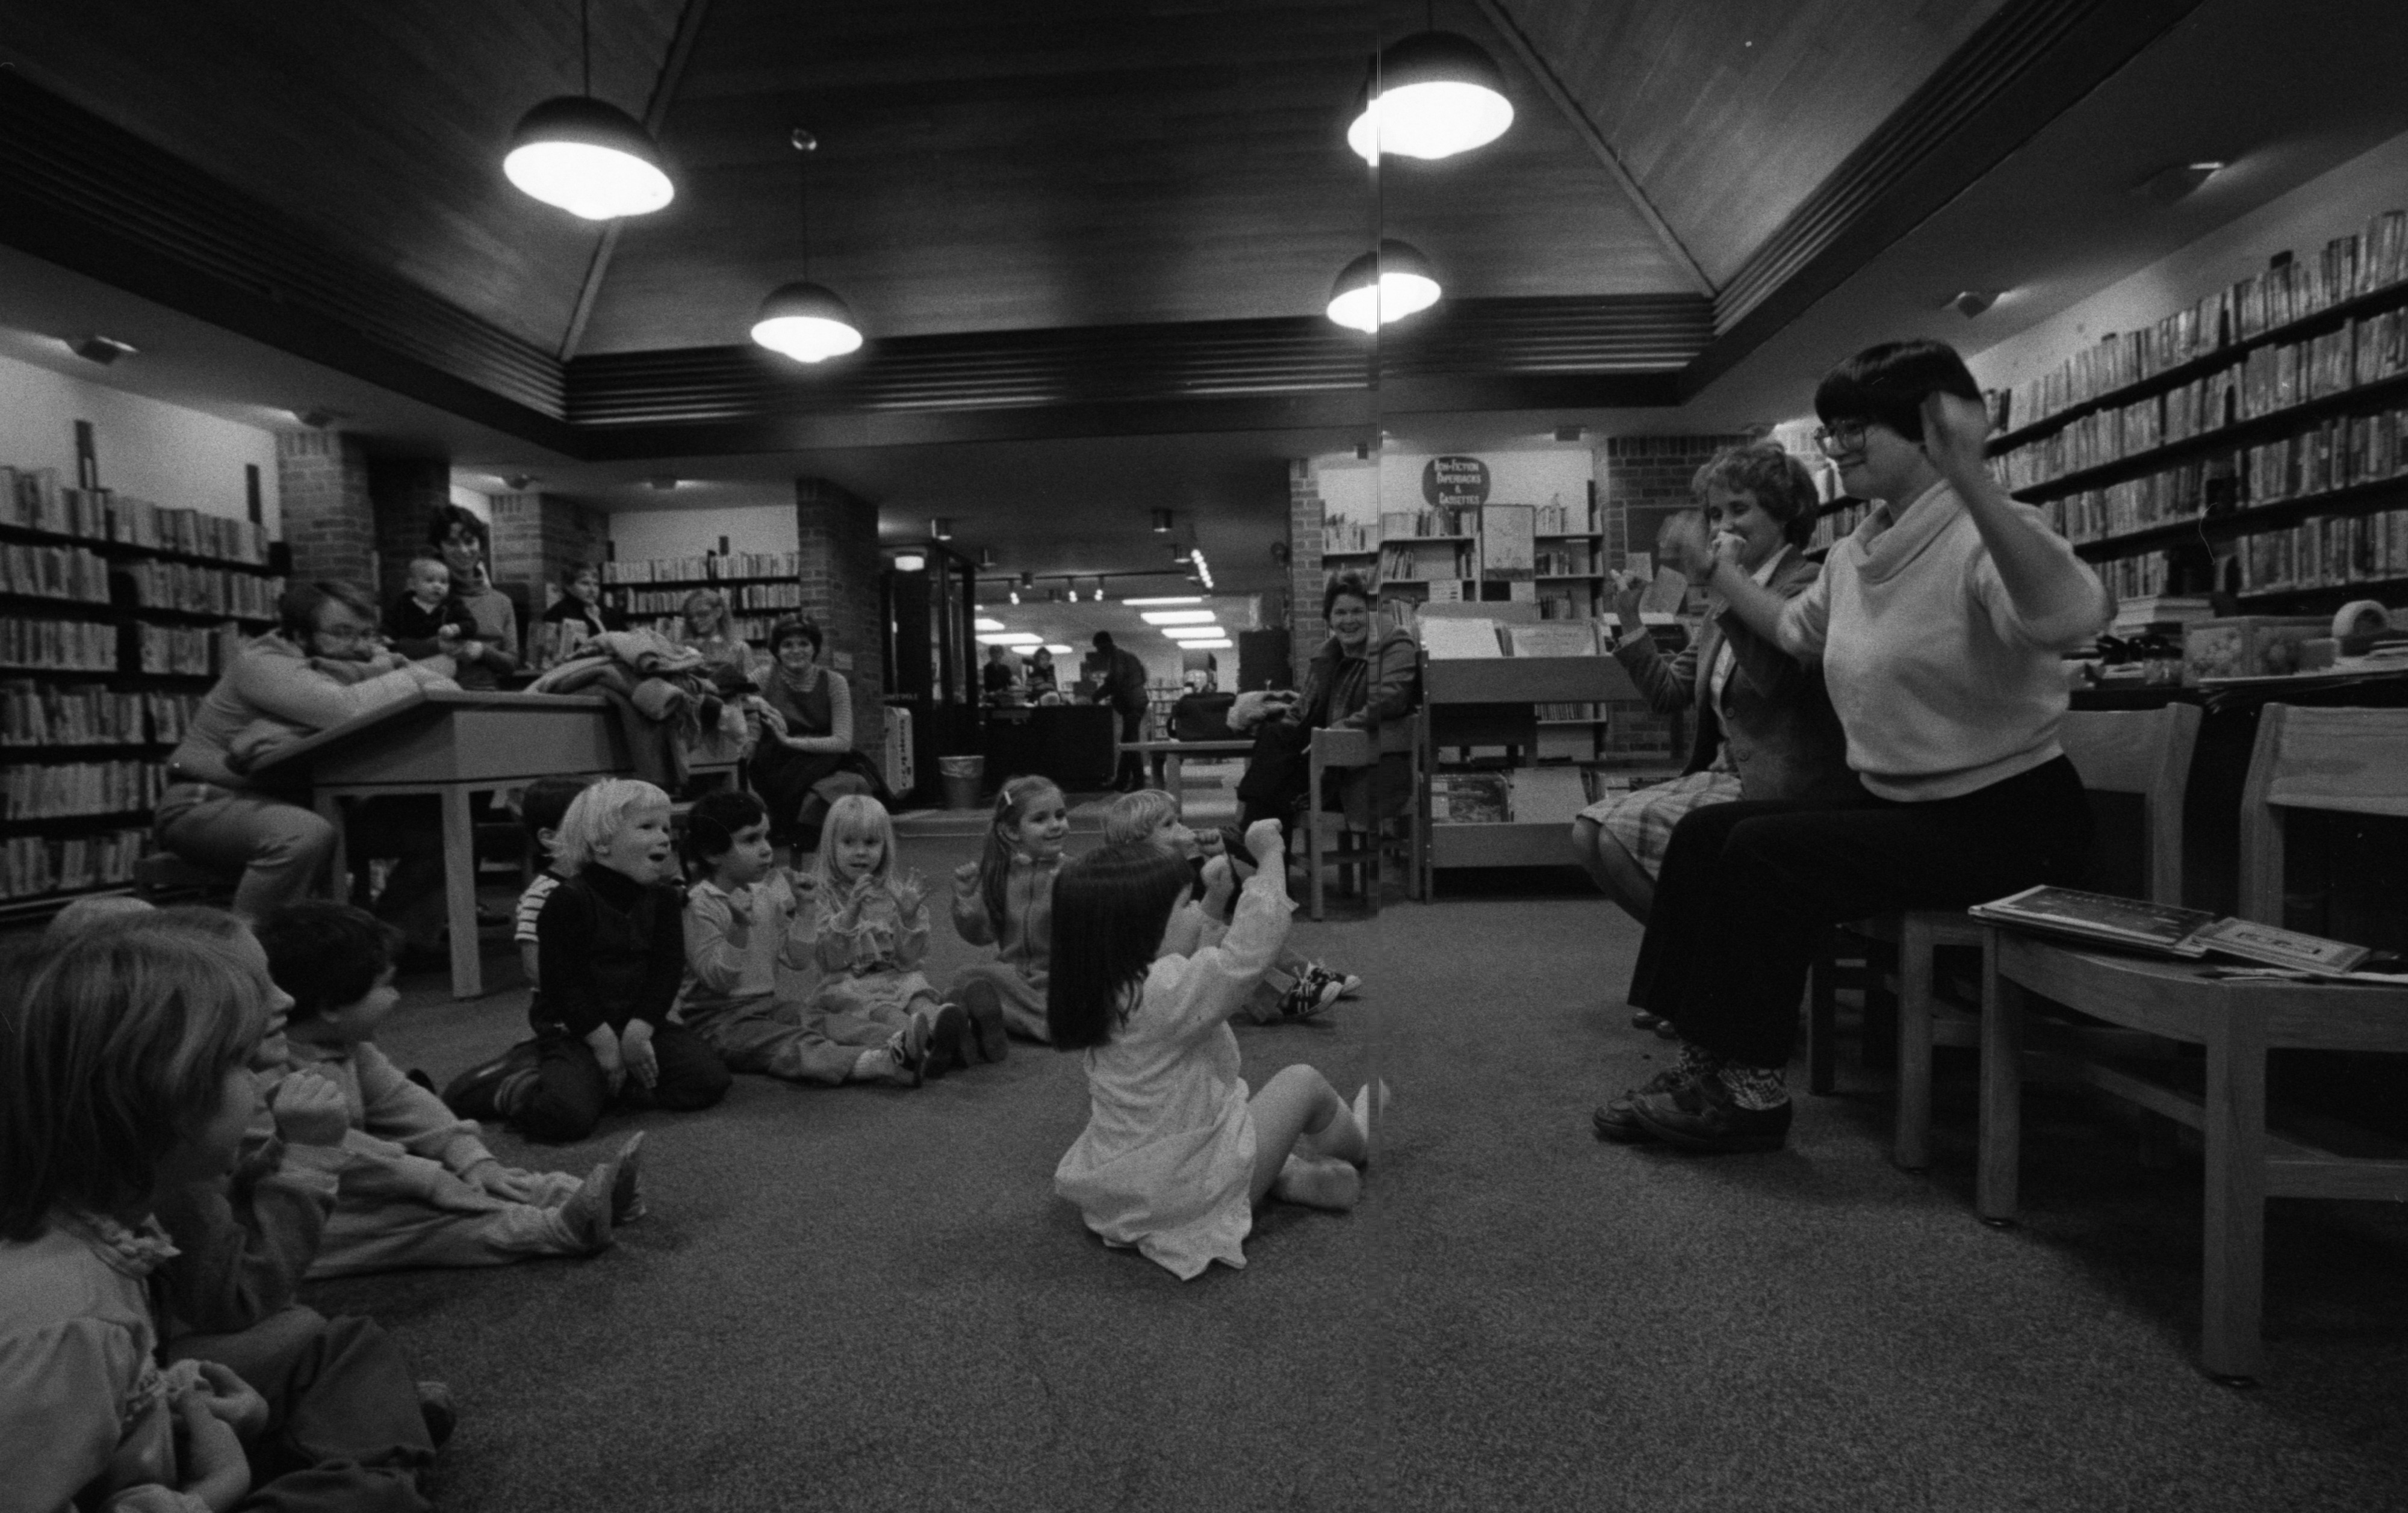 Fun & Games at Story Time at the Loving Branch Library, December 1982 image